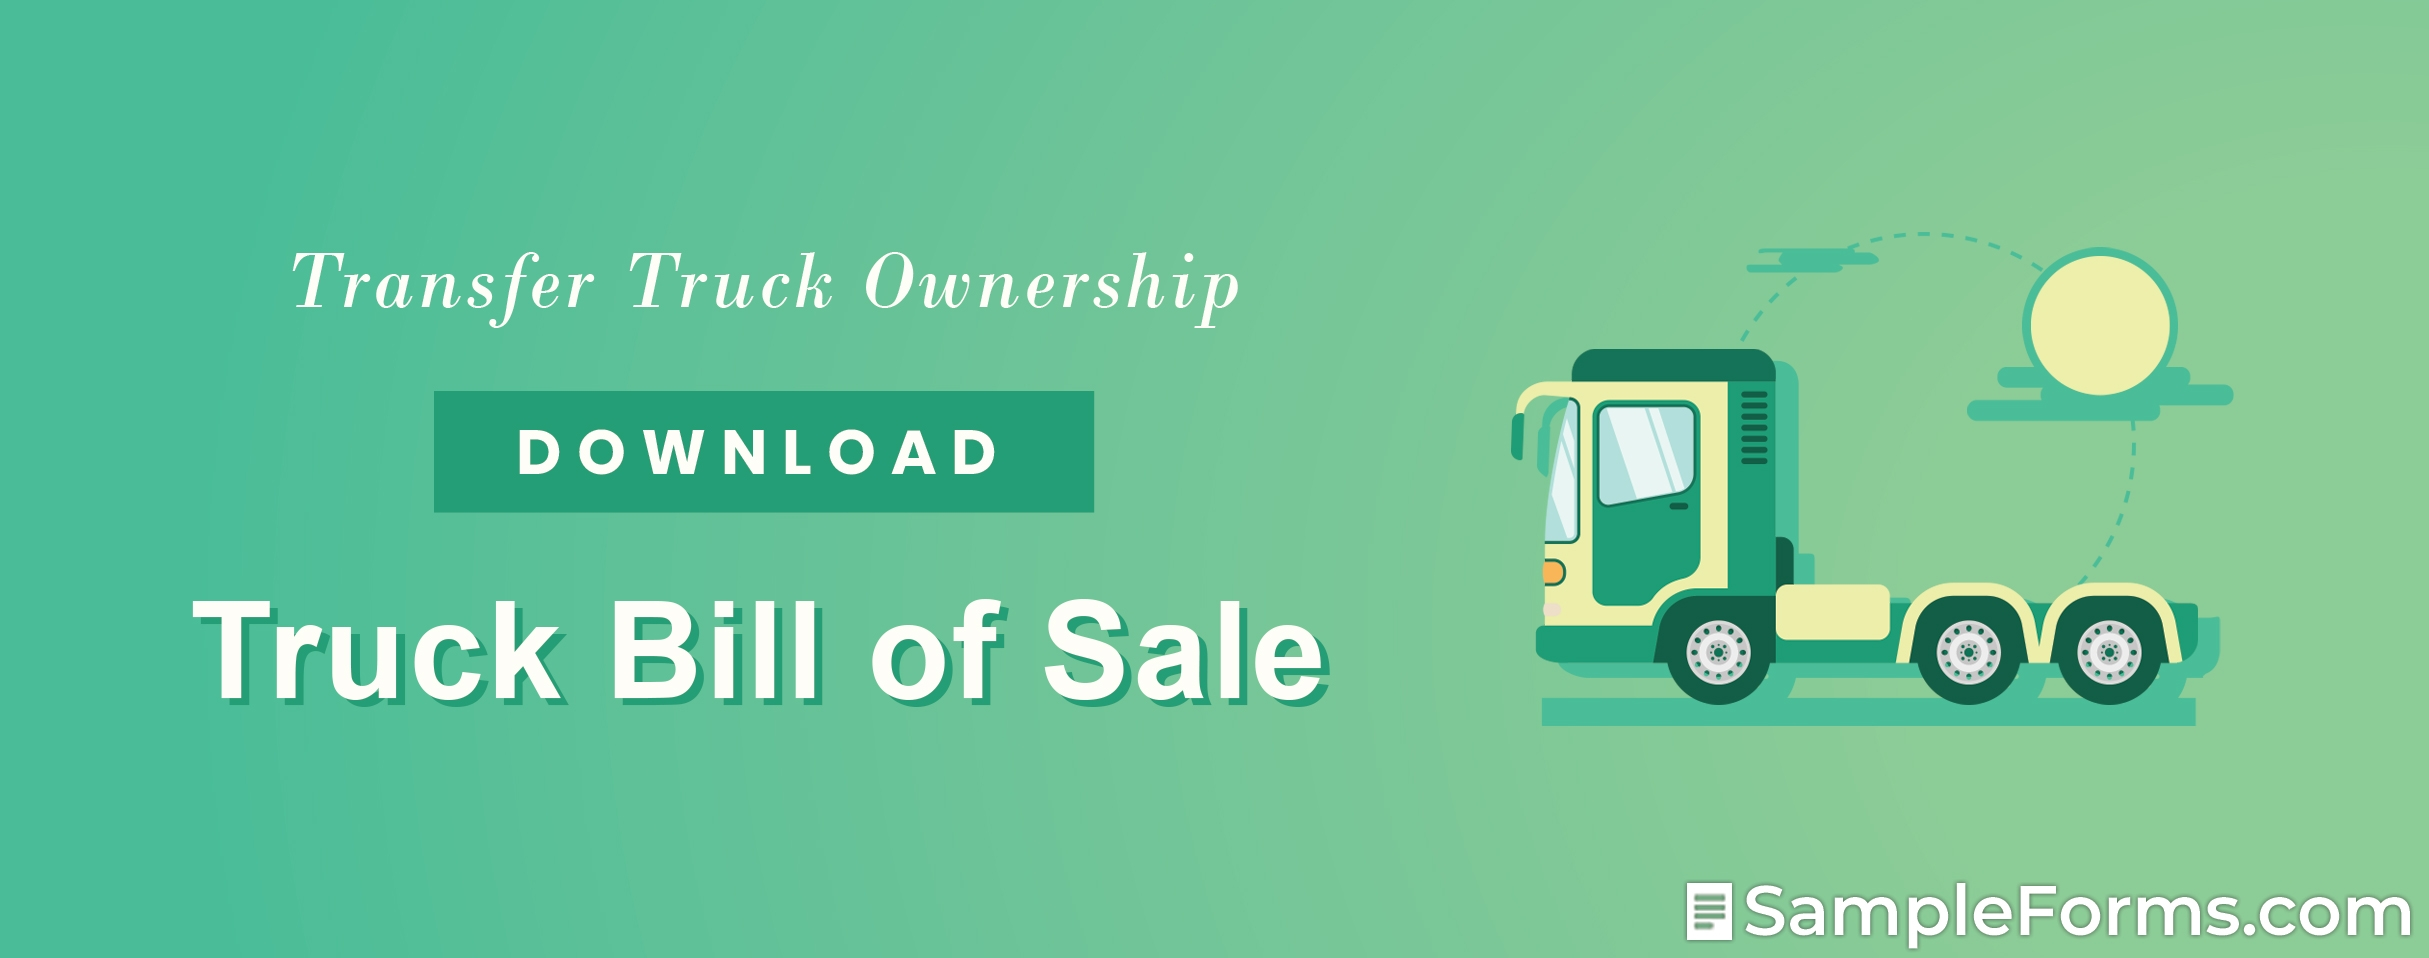 Truck Bill of Sale Form